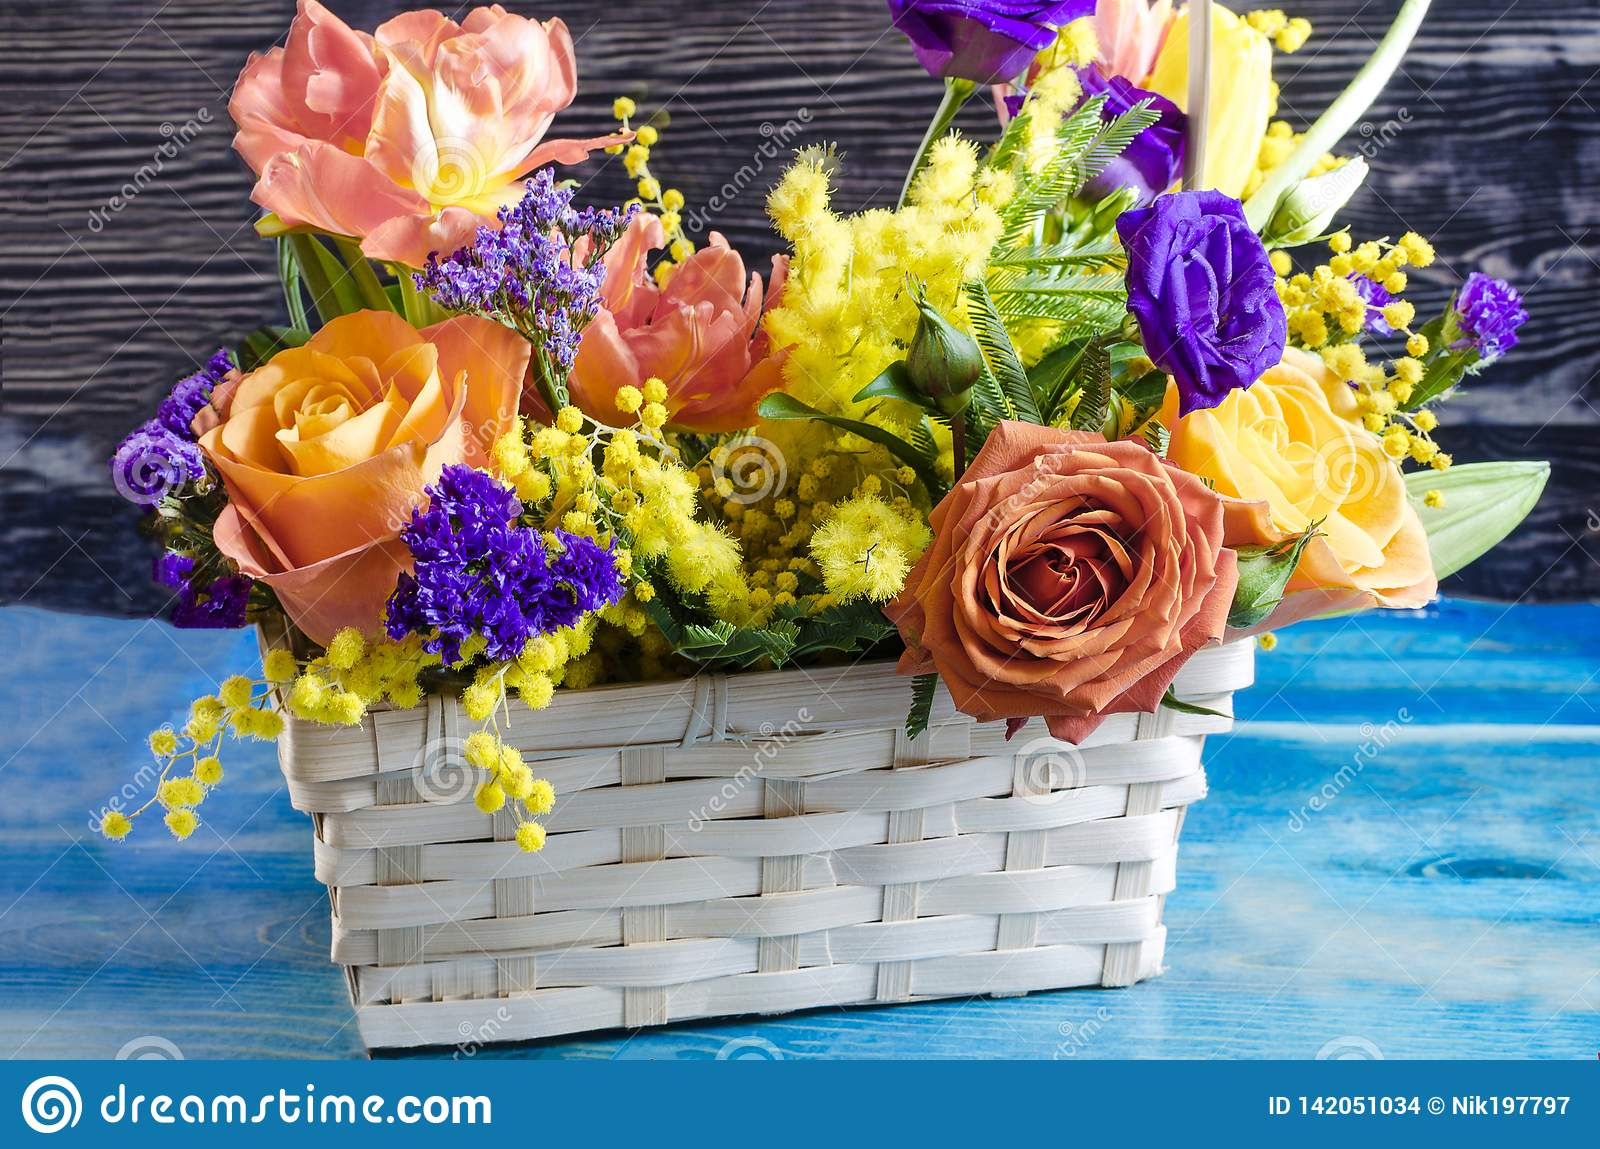 Flower Arrangement Close Up Of Fresh Flowers Of Red Yellow Blue Orange Flowers In A Wicker Basket Stock Photo Image Of Petals Arrangement 142051034